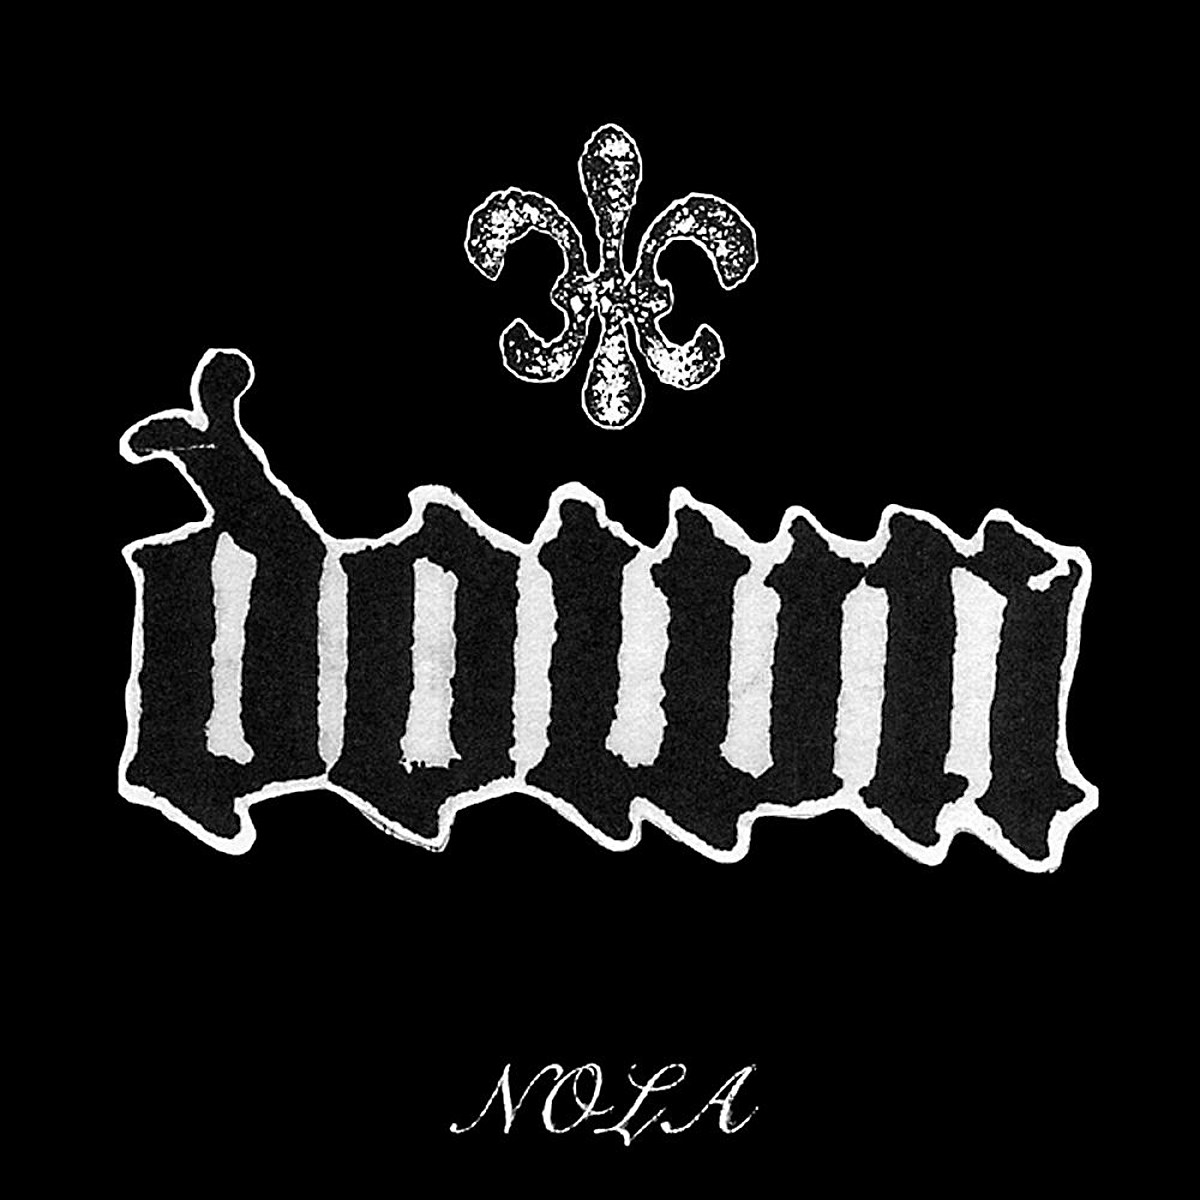 Metal tours announced: Ozzy, Down, Electric Wizard, Tool, Roadburn, more